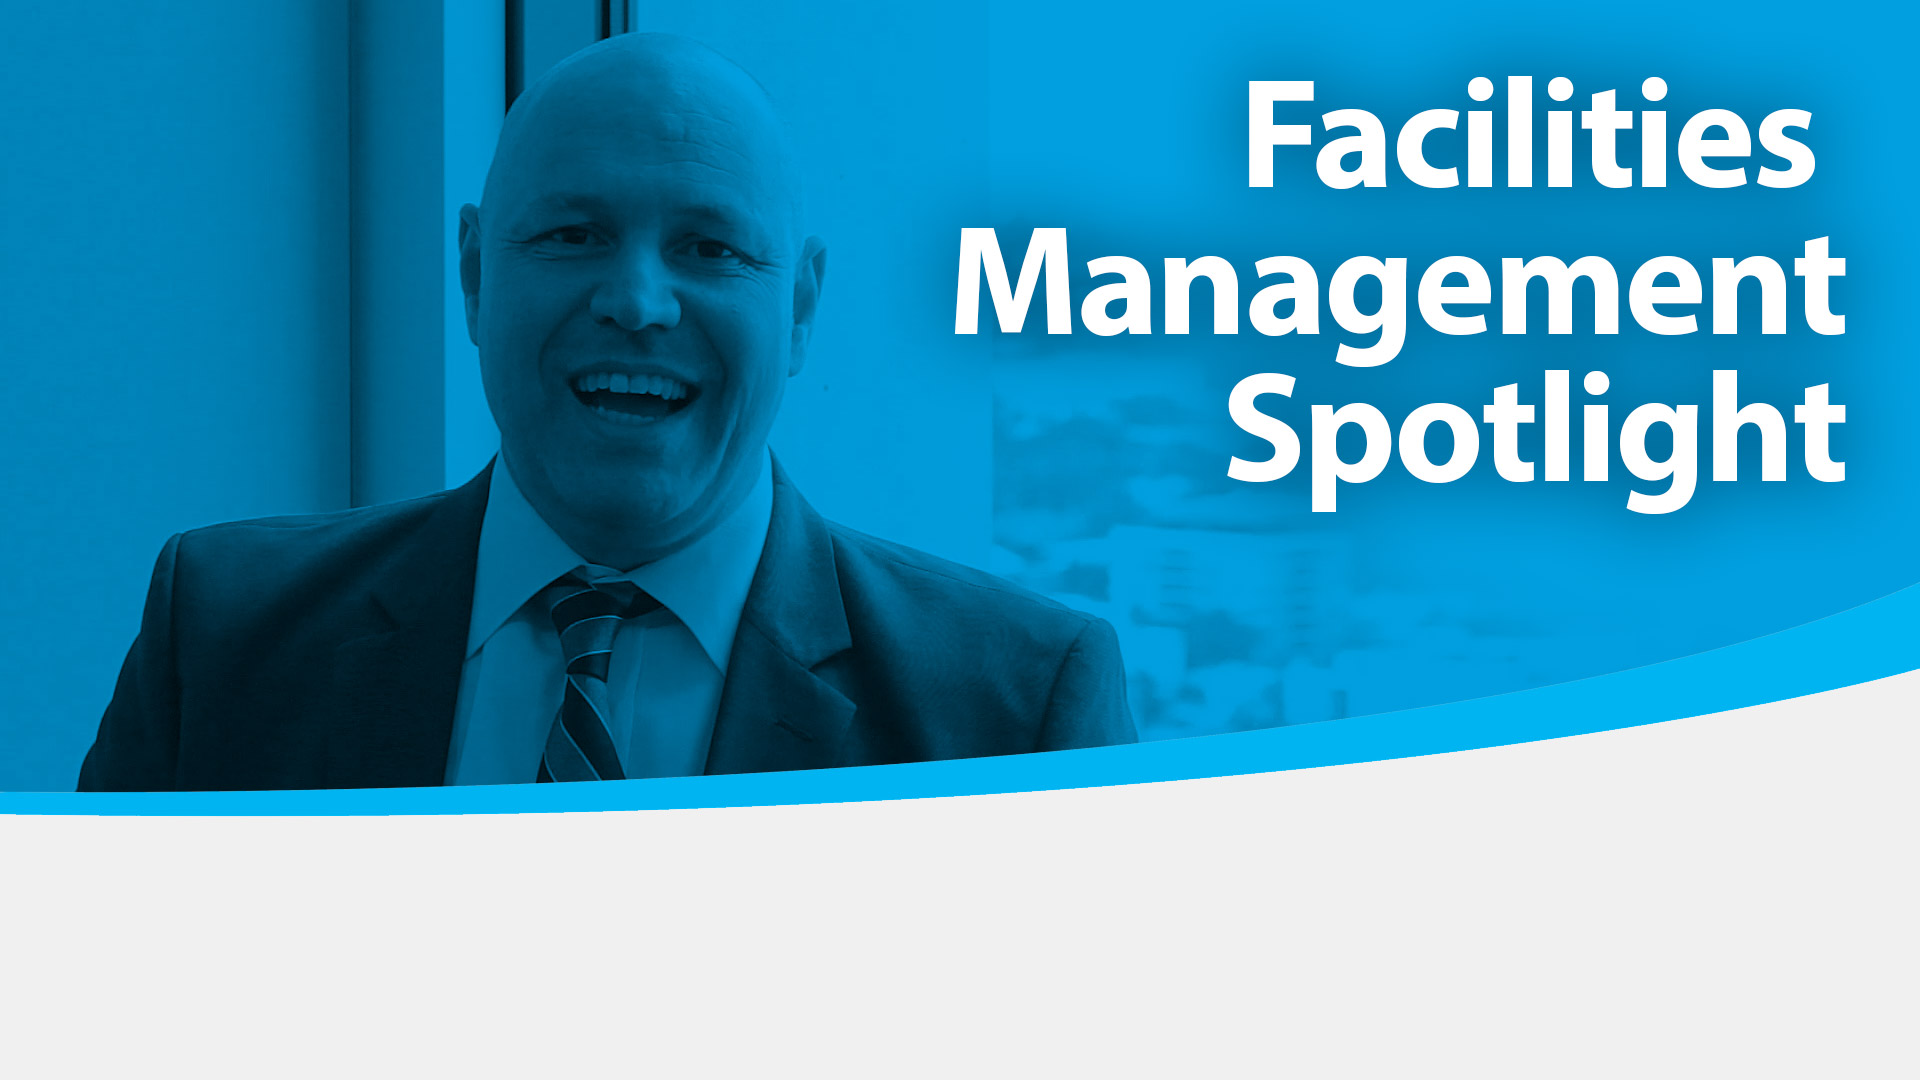 Tony Mangraviti, deputy general manager at Building Facilities Management Solutions (BFMS)